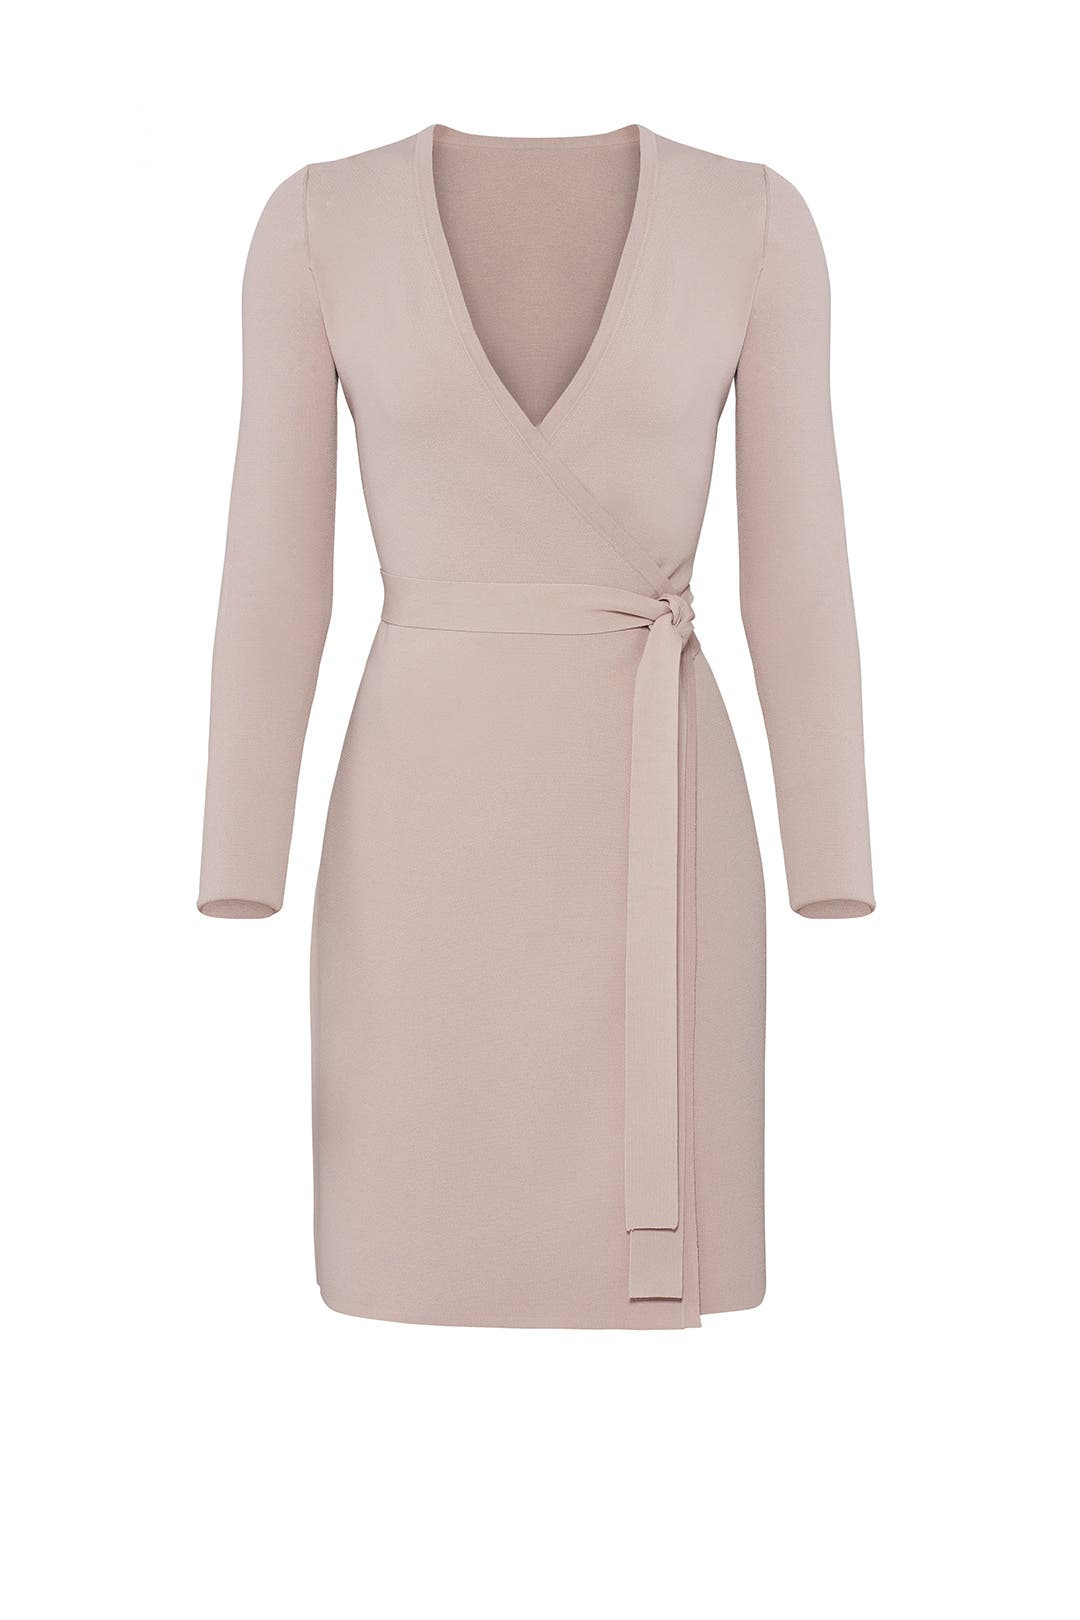 dvf knit wrap dress weddings dresses